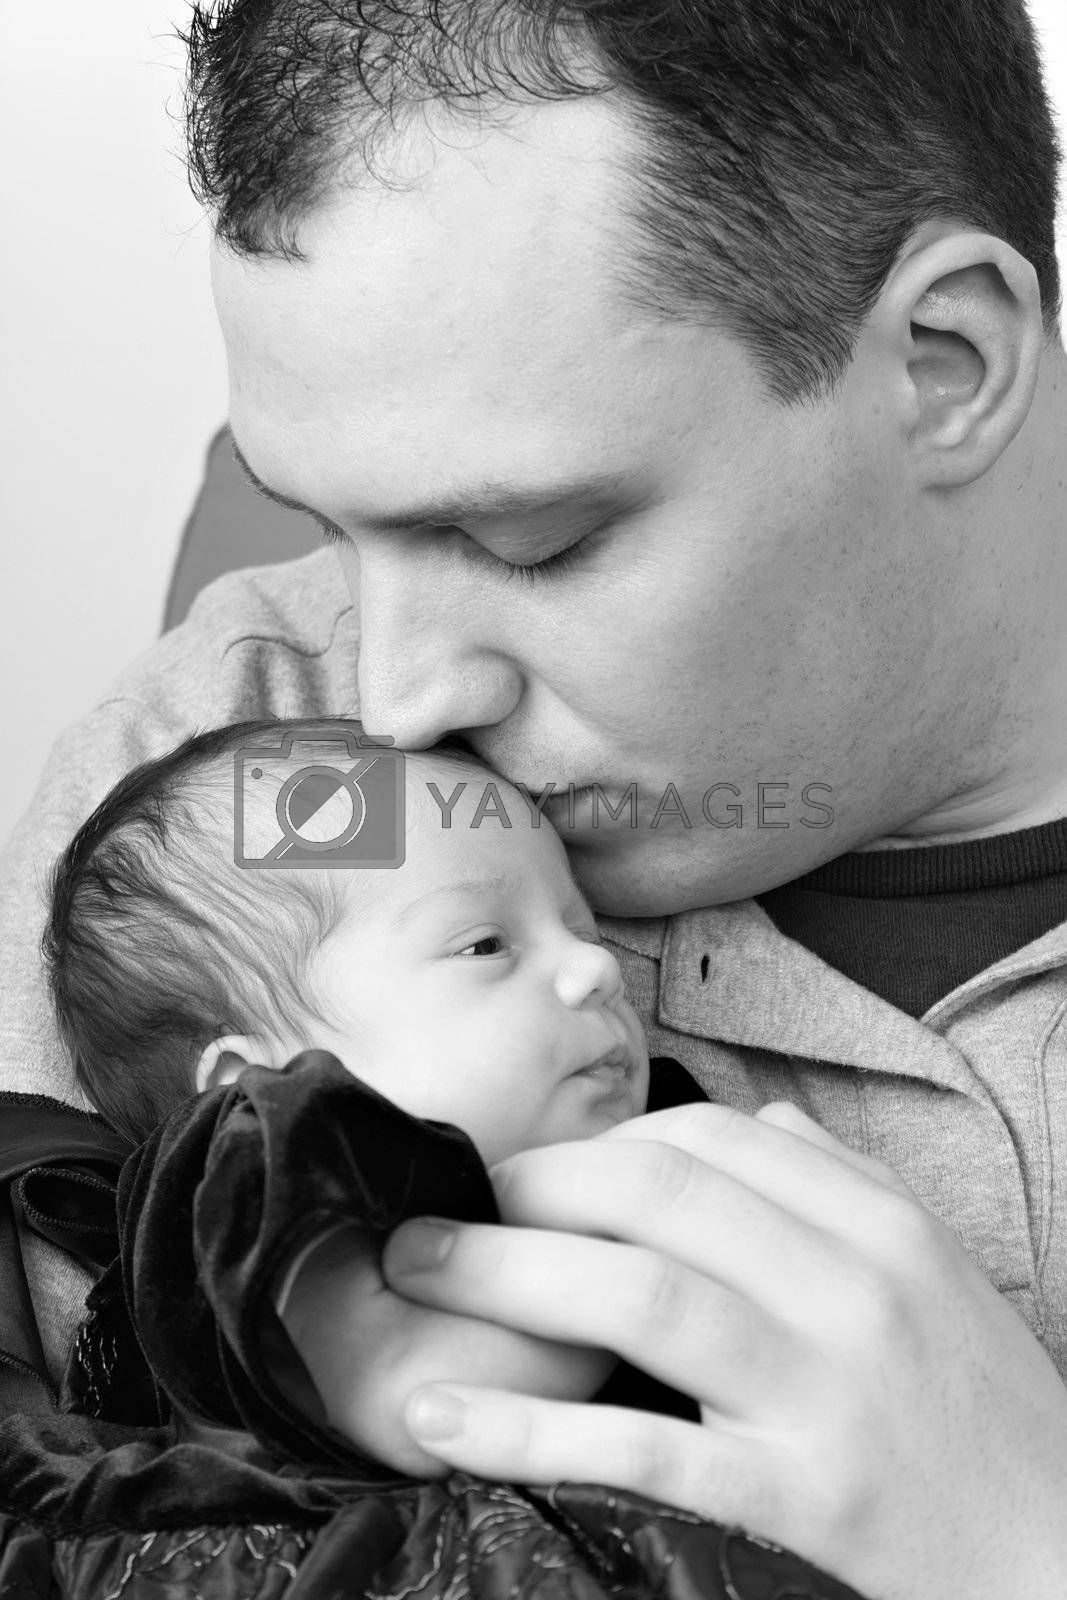 A newborn baby girl being by her dad as he kisses her head in black and white.